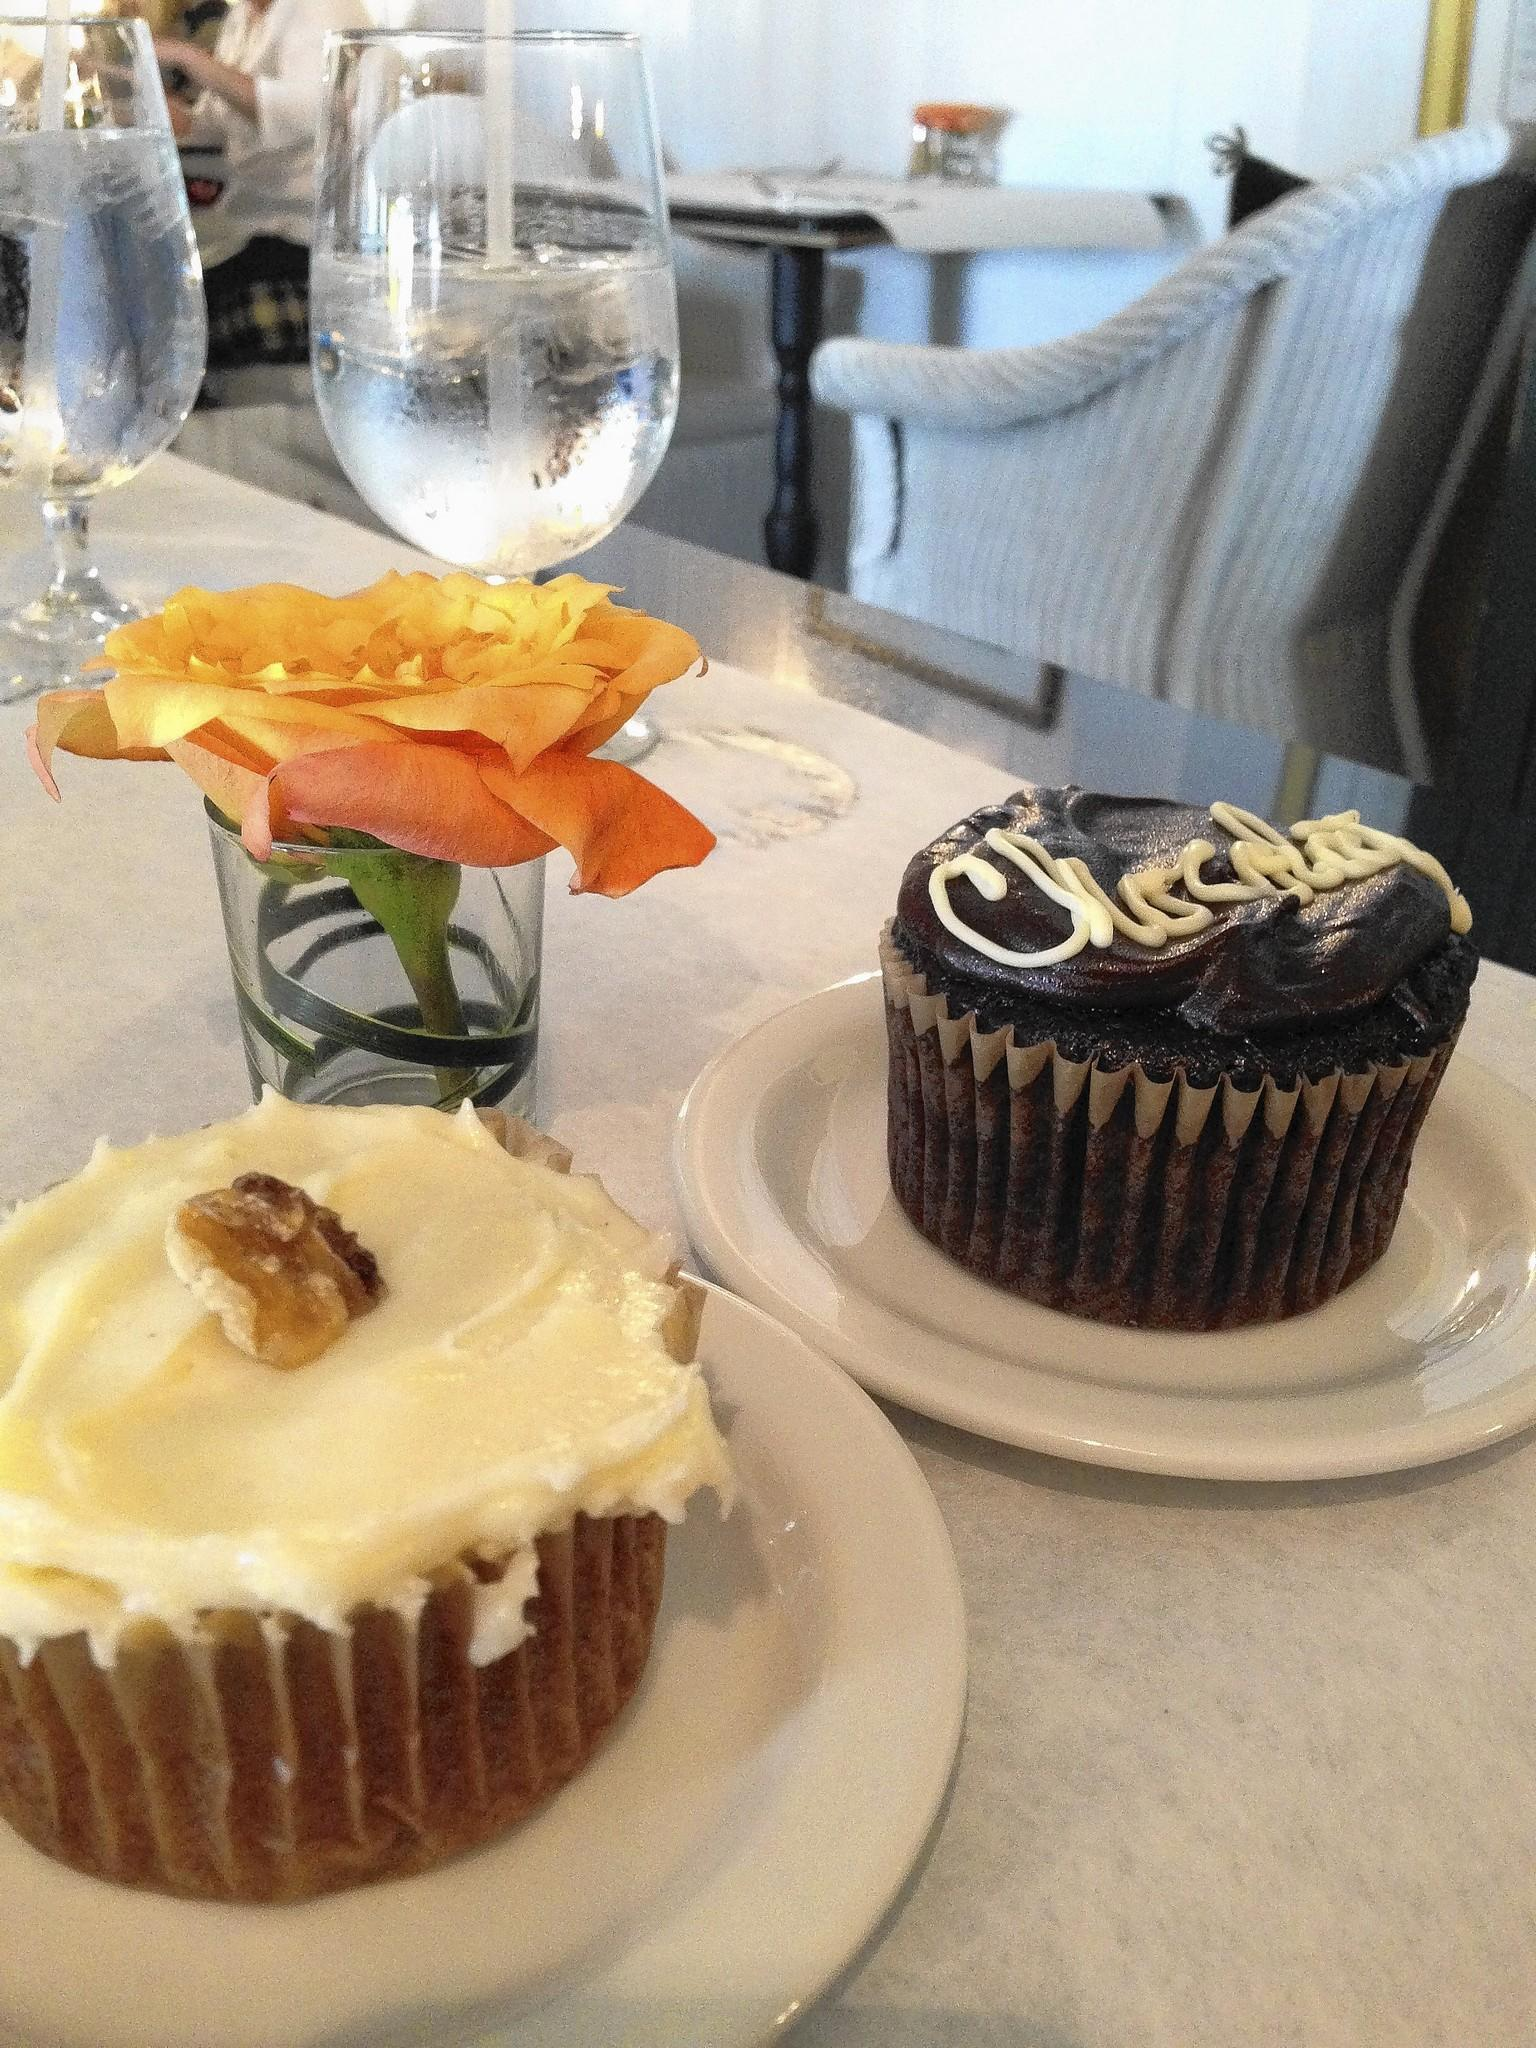 A carrot cupcake and a chocolate cupcake from Elizabeth's Cafe.